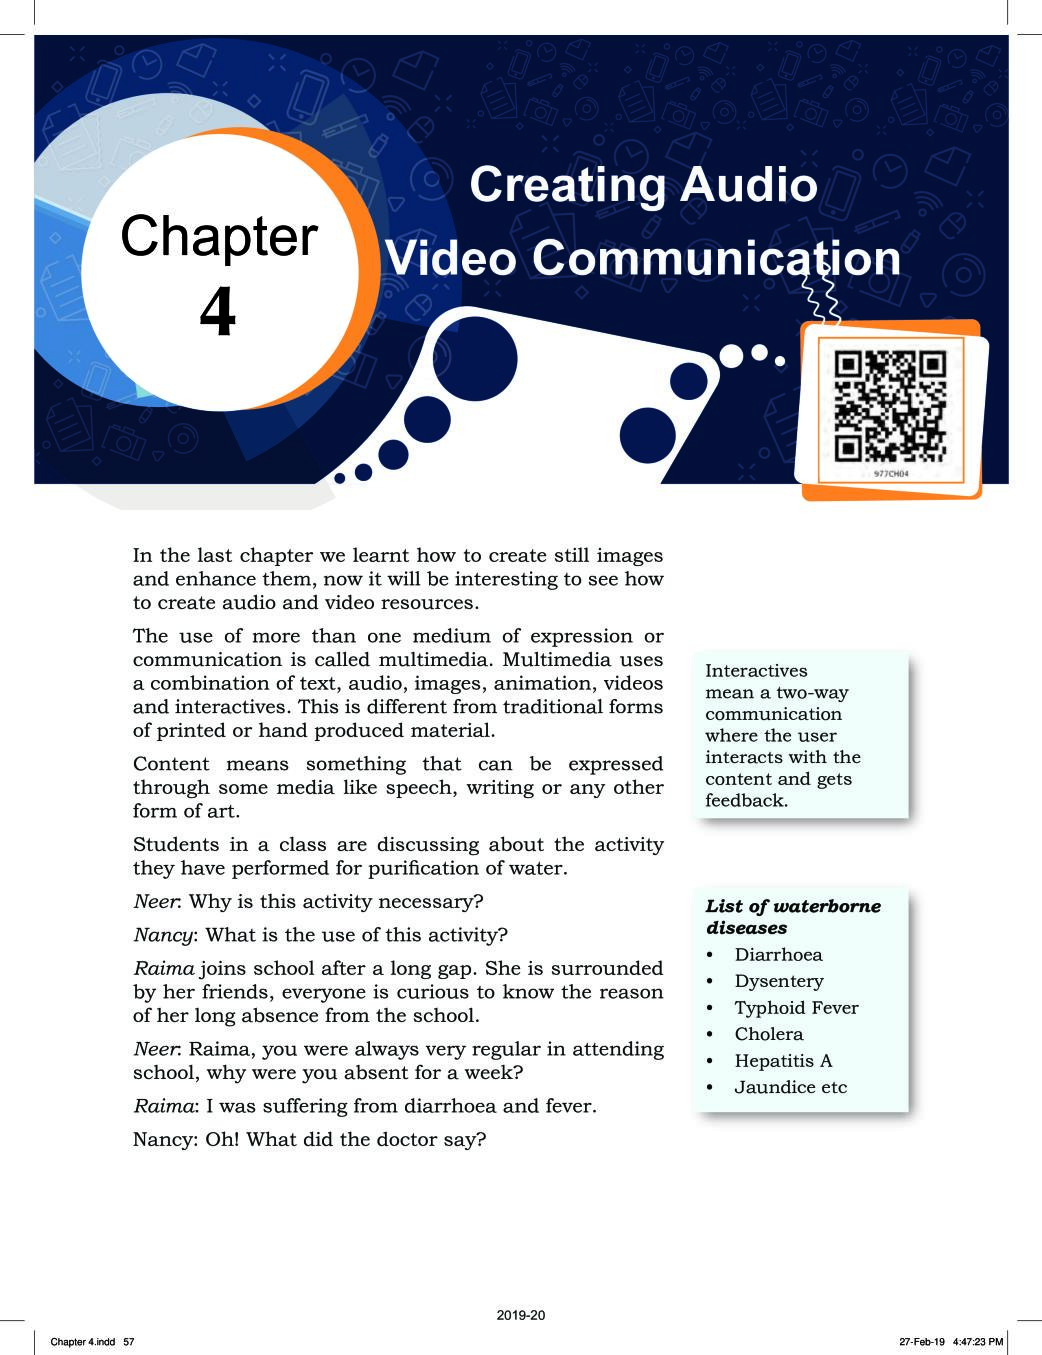 NCERT Book Class 9 ICT Chapter 4 Creating Audio-Video Communication